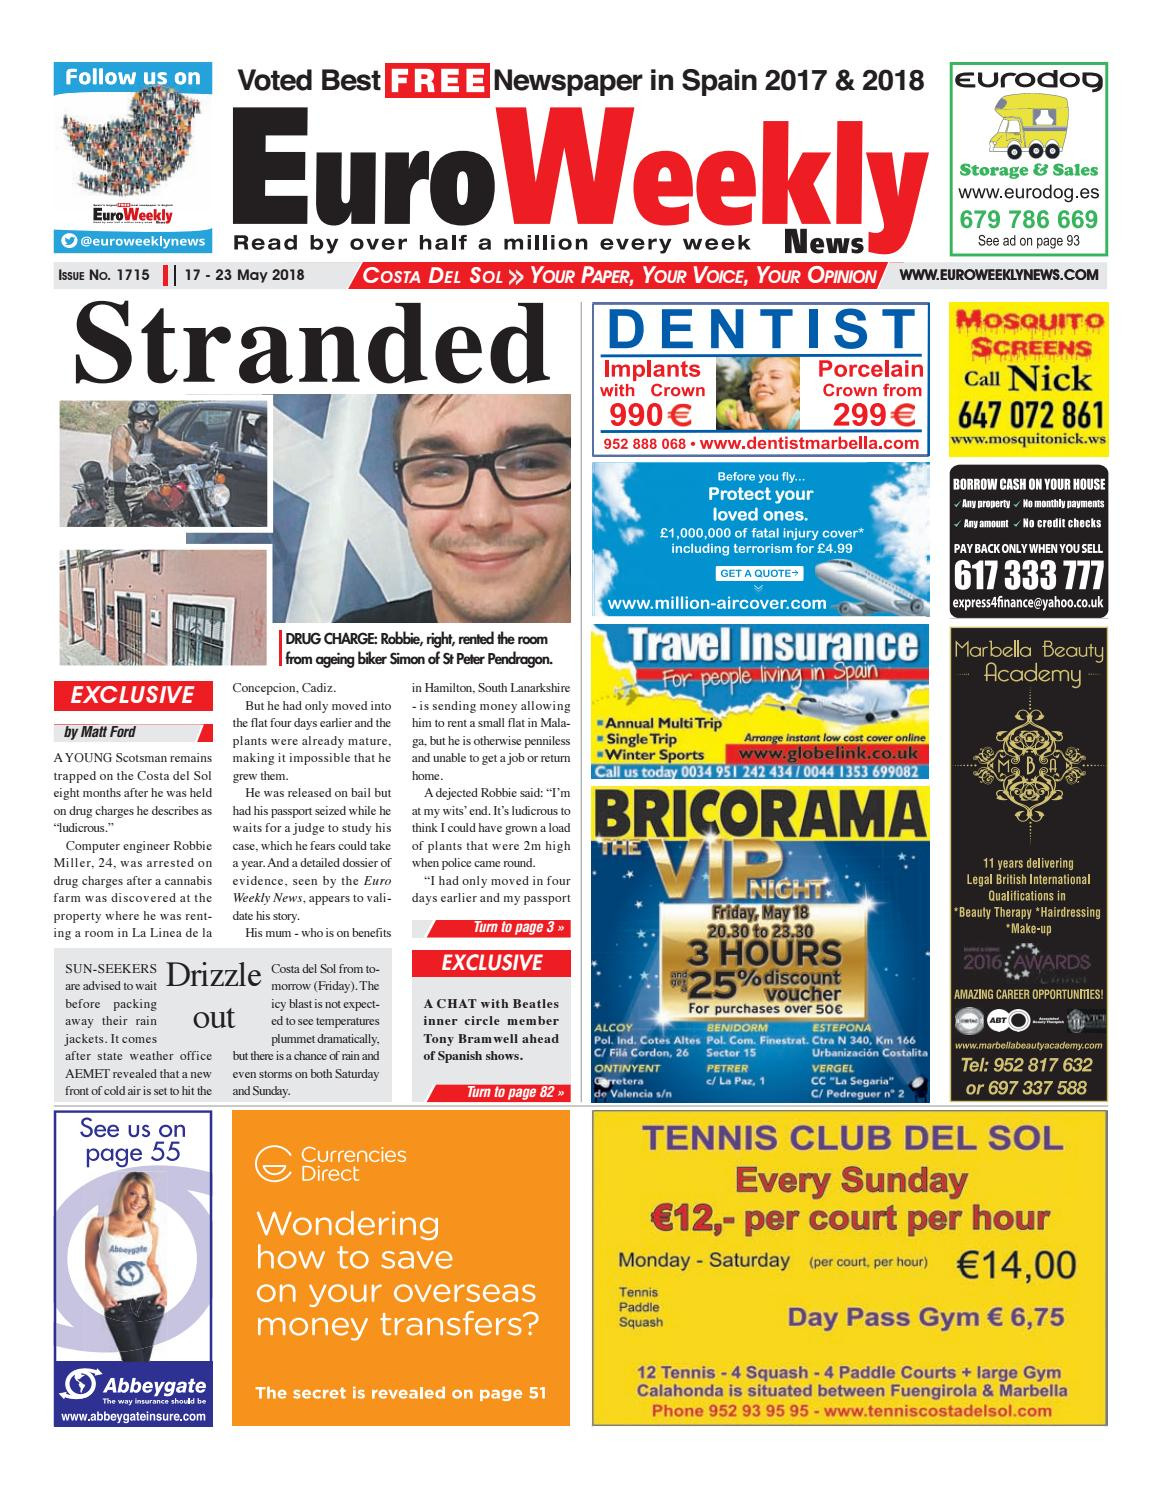 Euro Weekly News - Costa del Sol 17 - 23 May 2018 Issue 1715 by Euro Weekly News Media S.A. - issuu